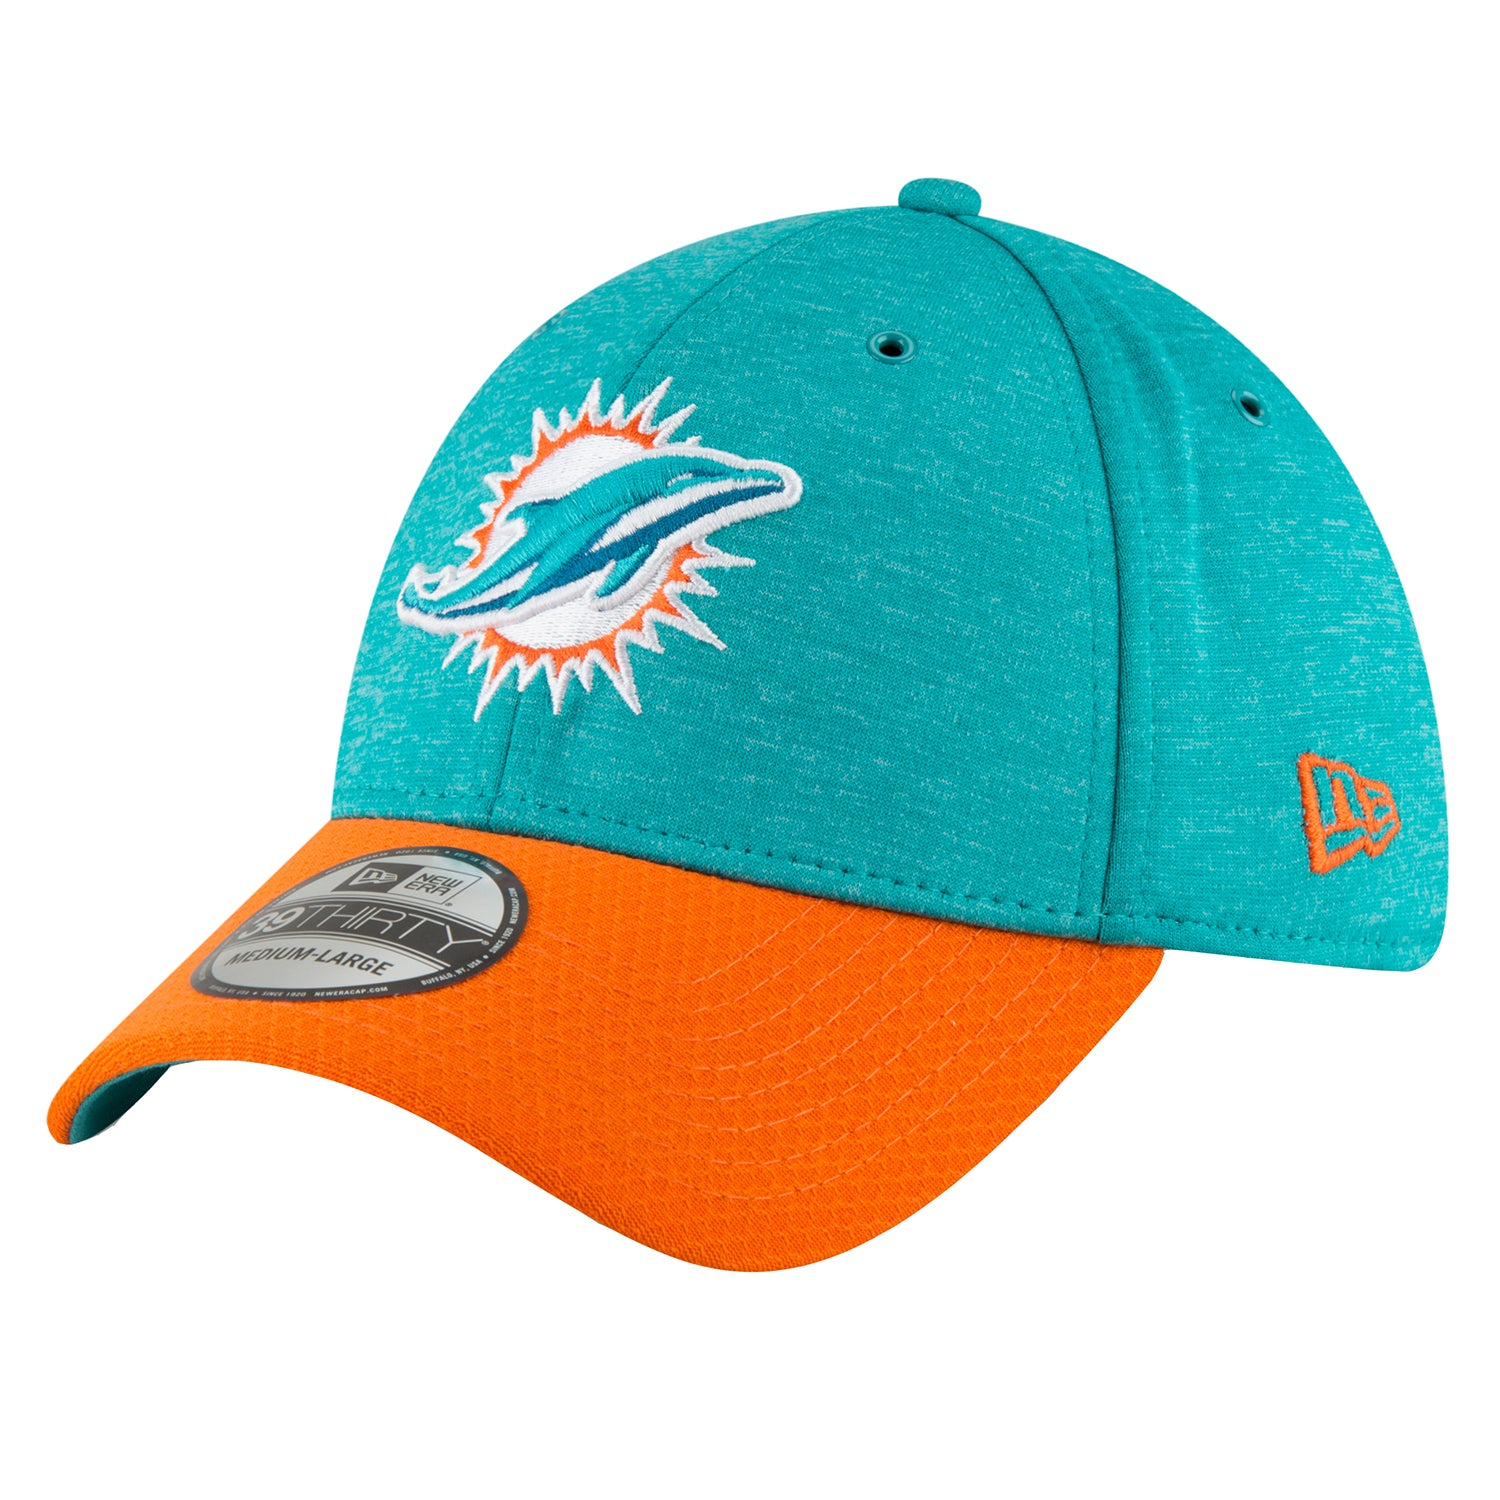 cc81a9ce Details about New Era Onf18 39thirty Sl Hm Otc Headwear Cap - Miami  Dolphins All Sizes